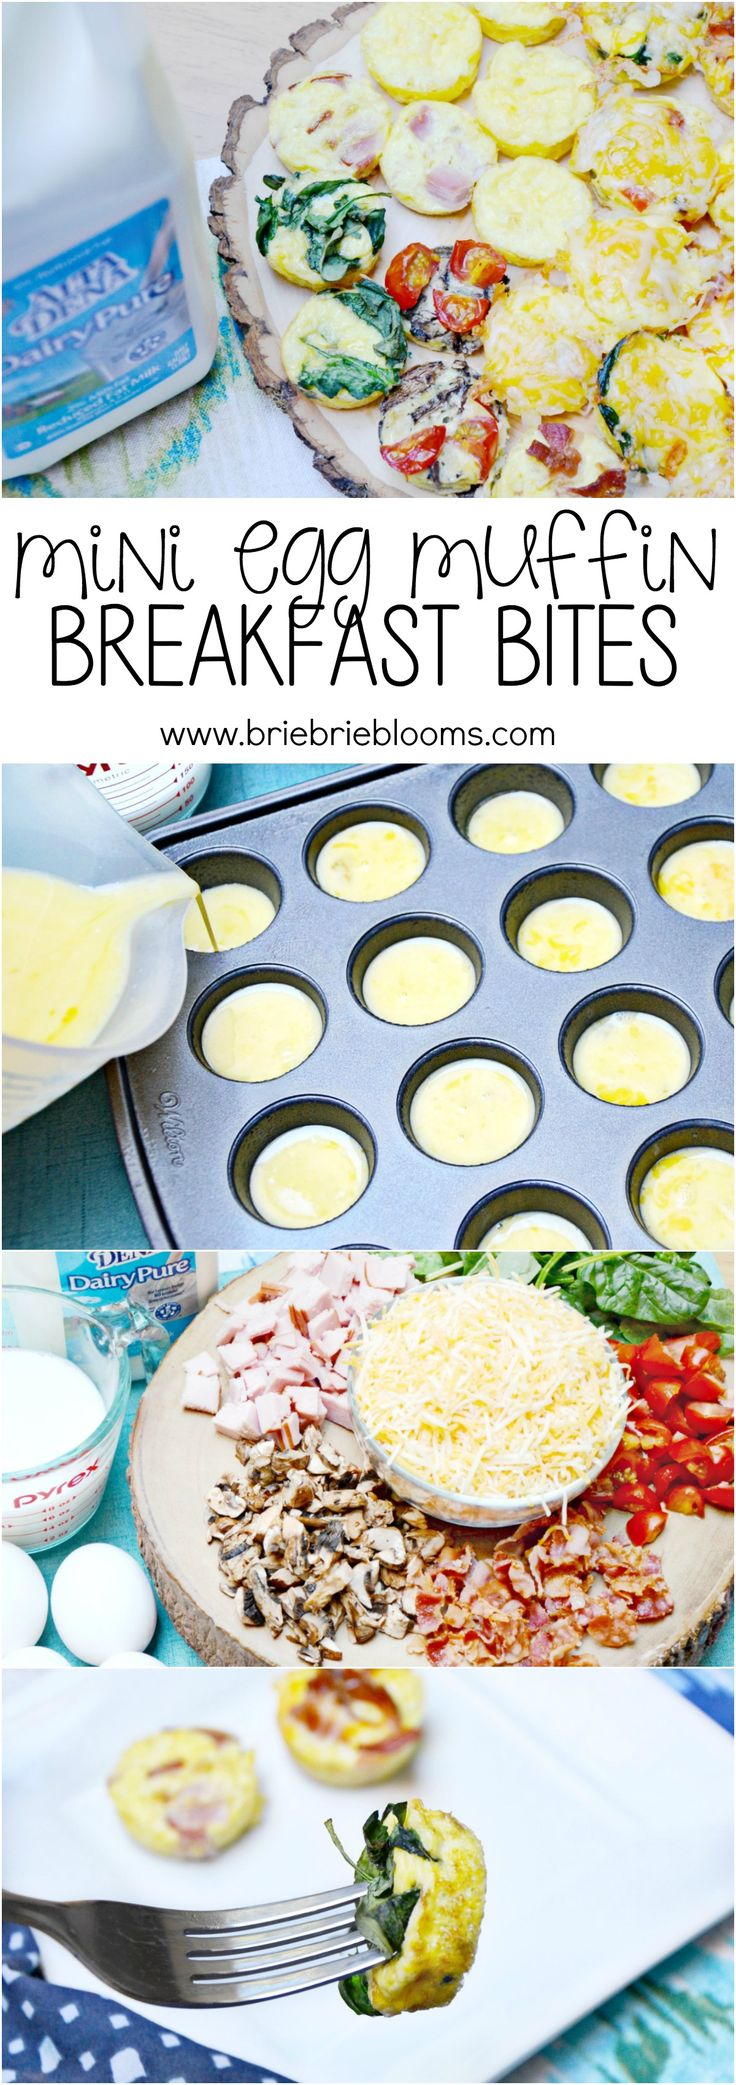 Make a variety of mini egg muffin breakfast bites for a great family breakfast and start to the day with protein and veggies. Easy recipe featuring @dairypuremilk. #DairyPureMilk #ad